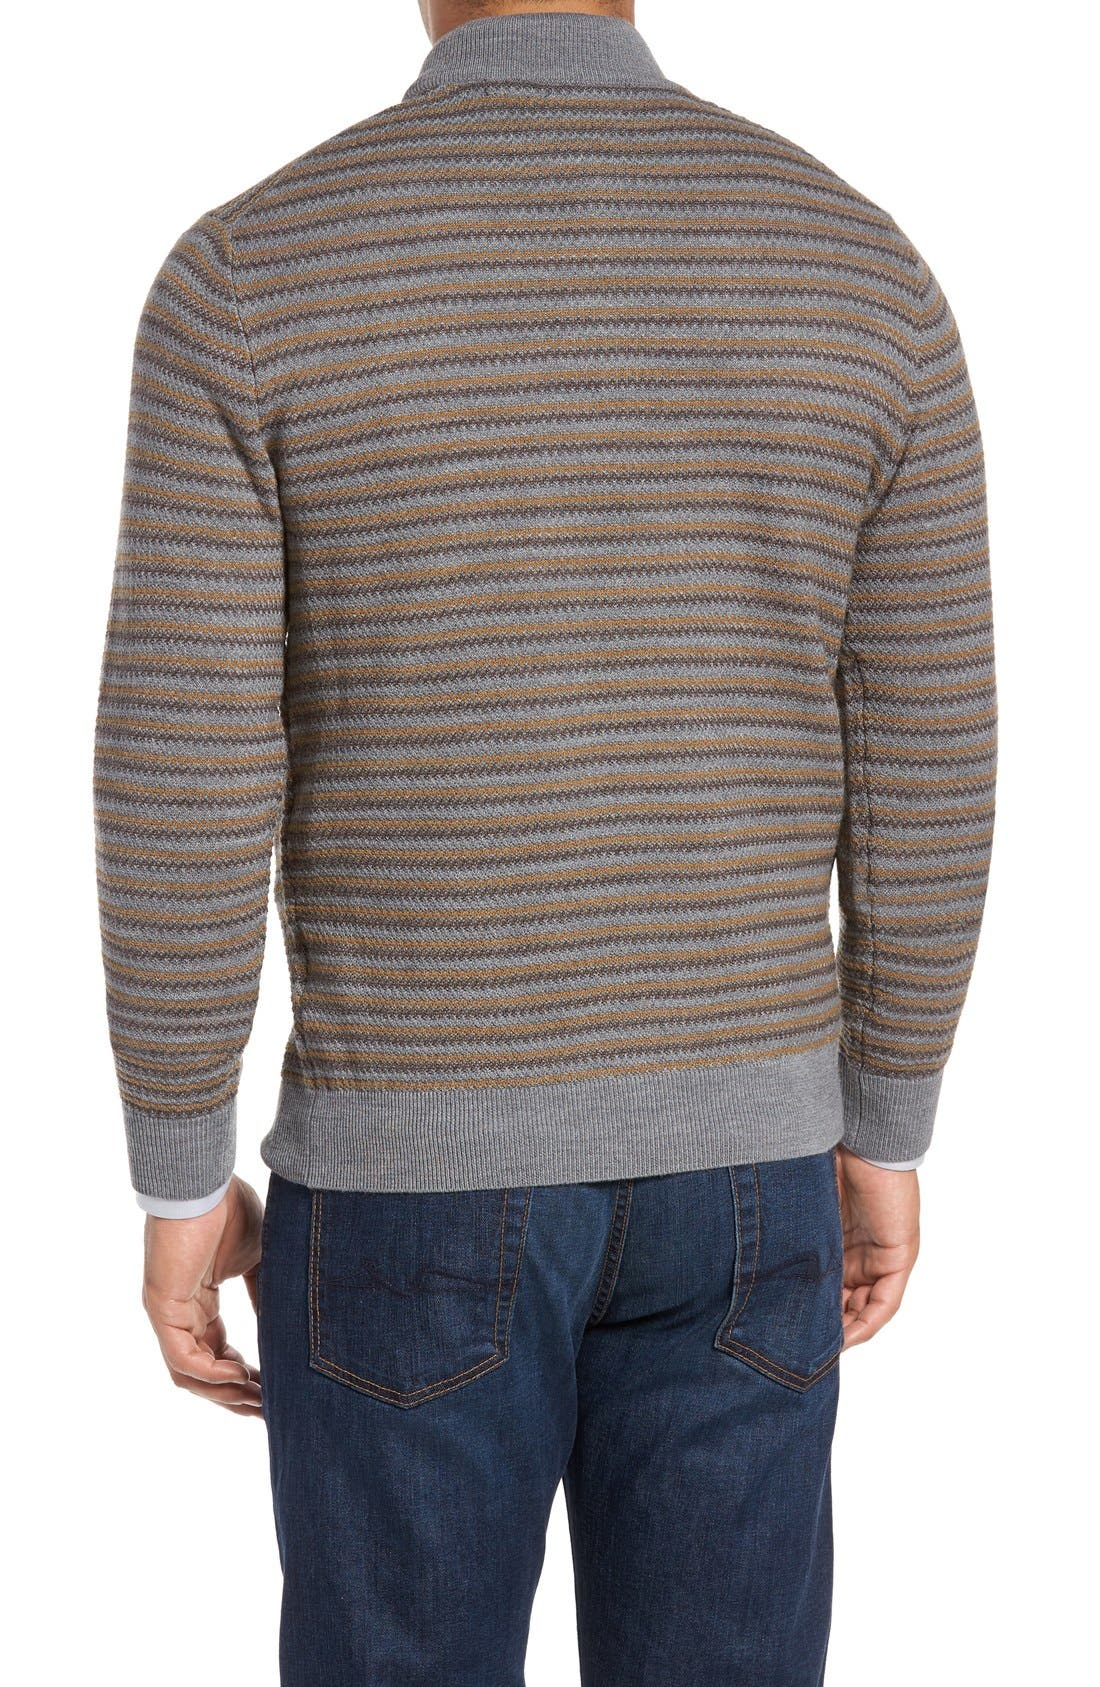 'Douglas Range' Quarter Zip Stripe Wool Blend Sweater,                             Alternate thumbnail 2, color,                             Brown/ Multi